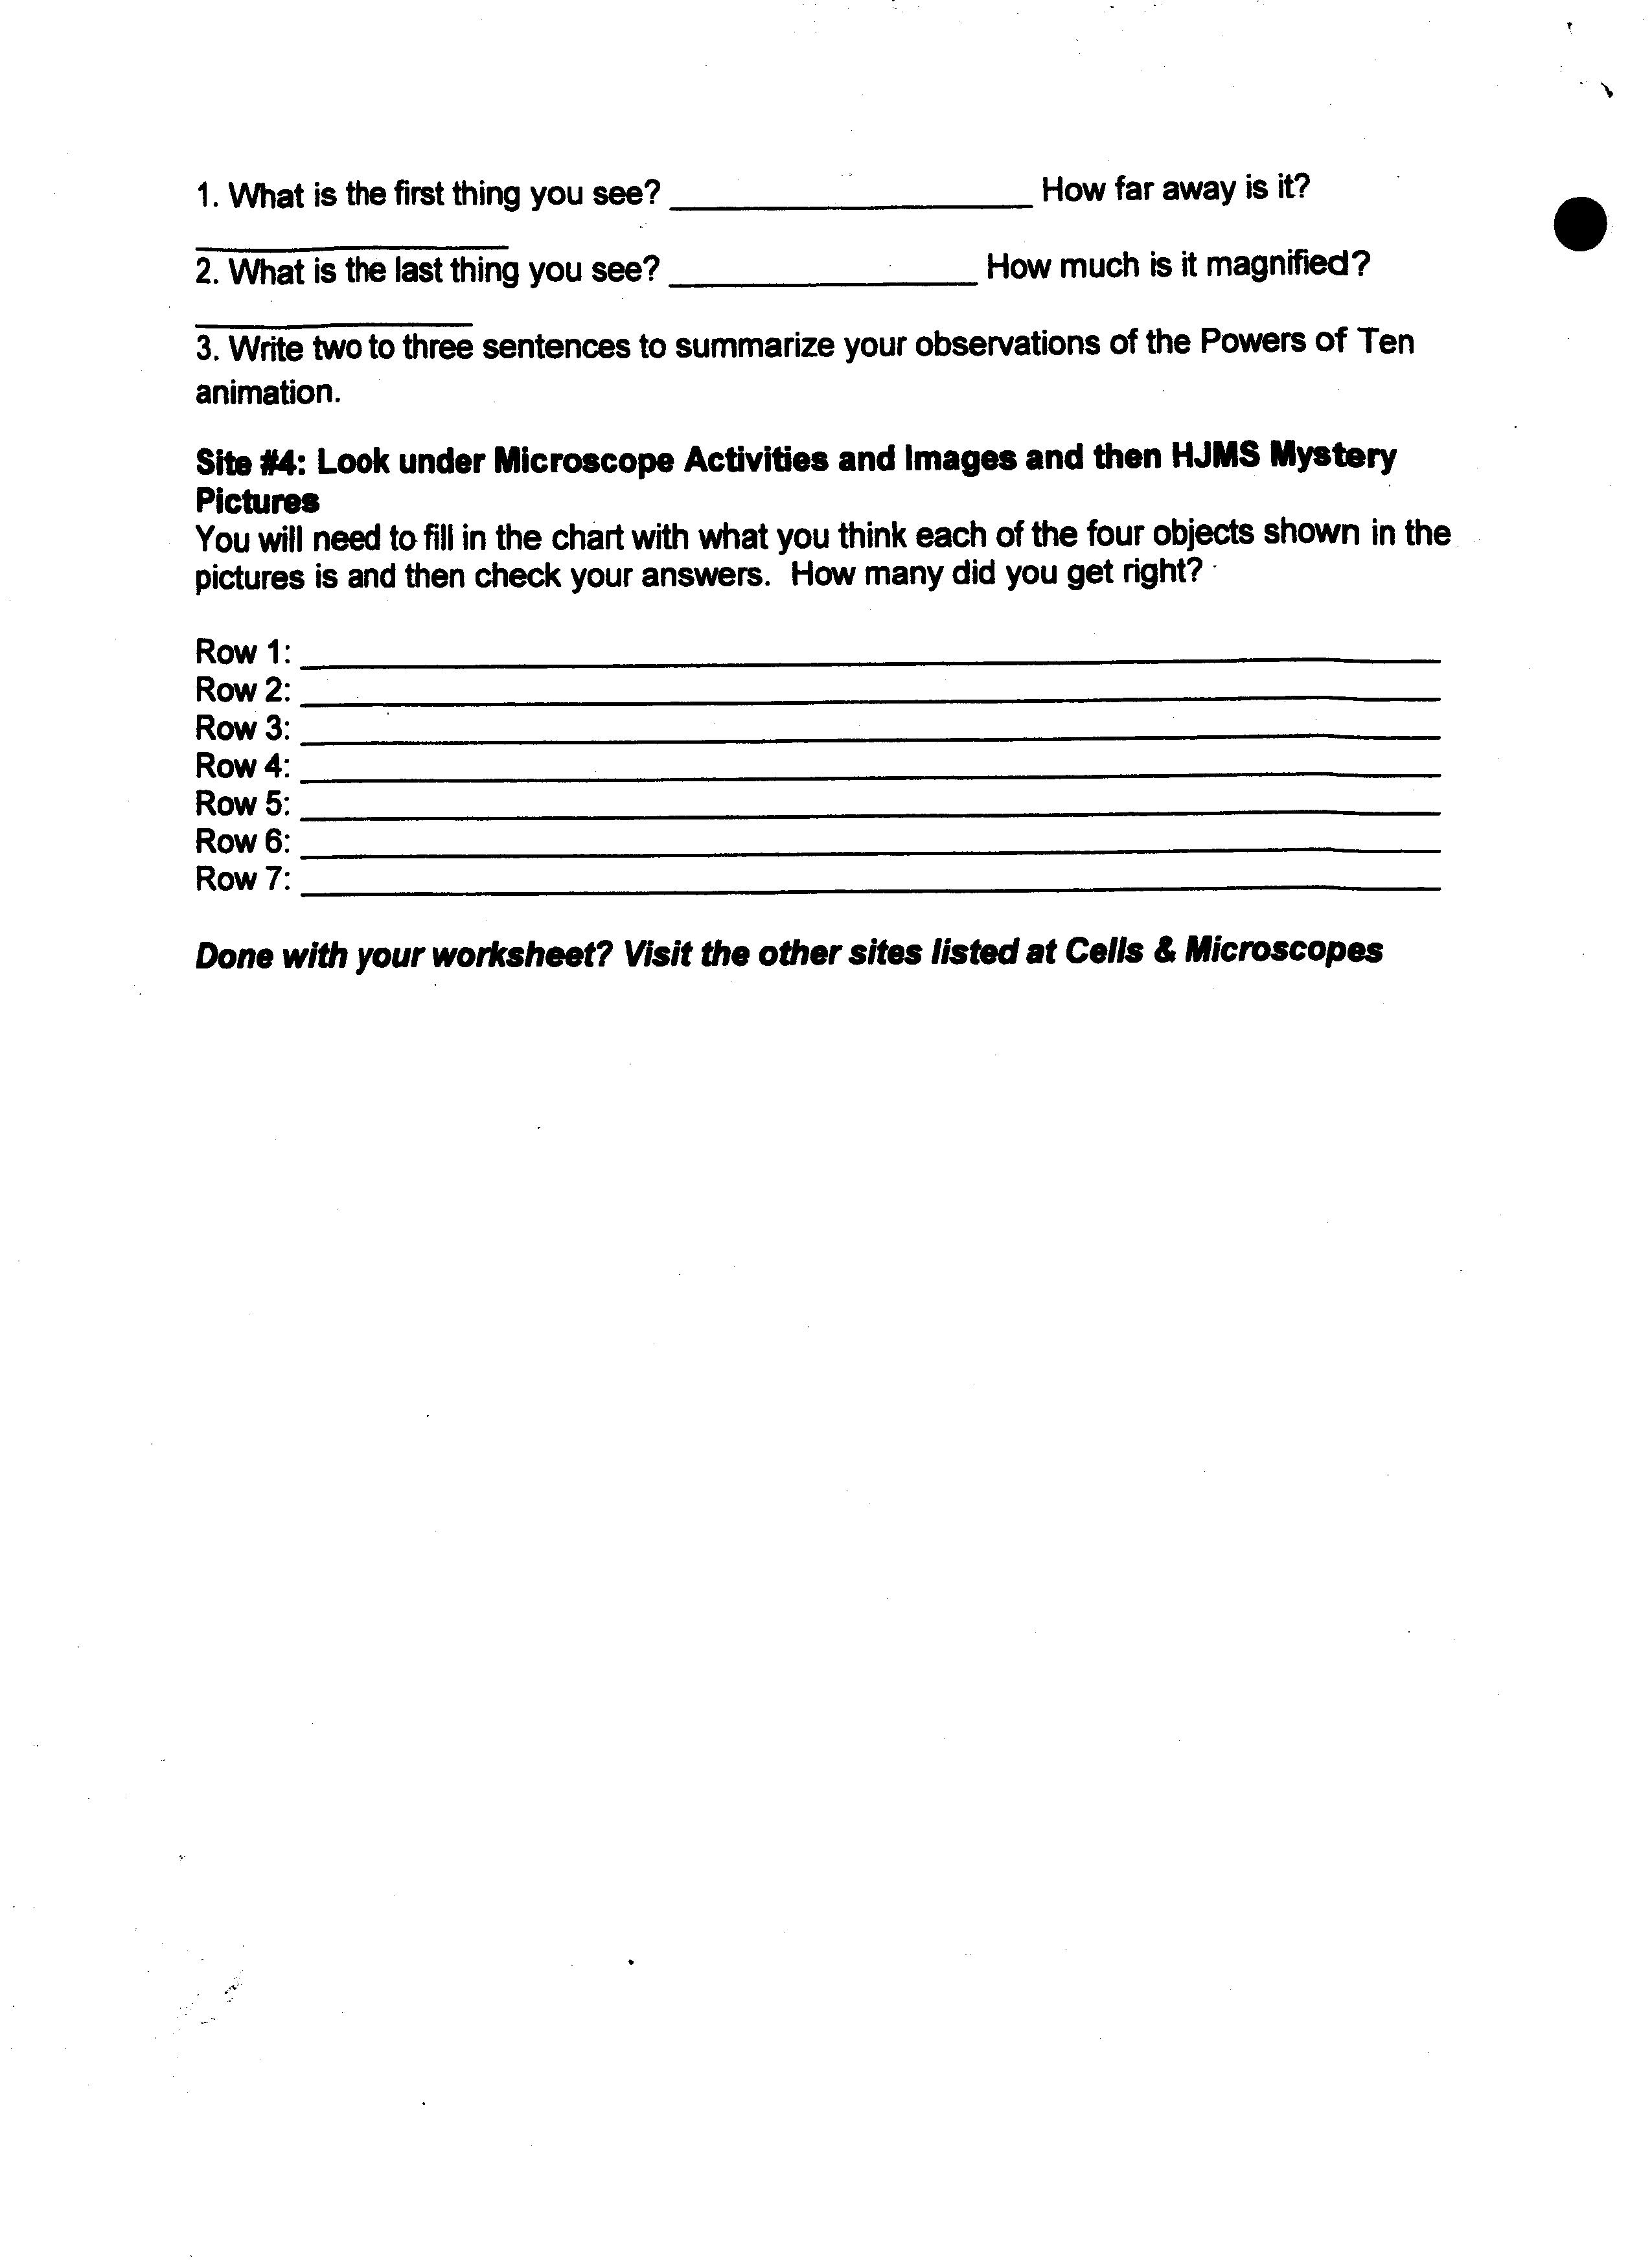 Microscopes Online Worksheet Answers